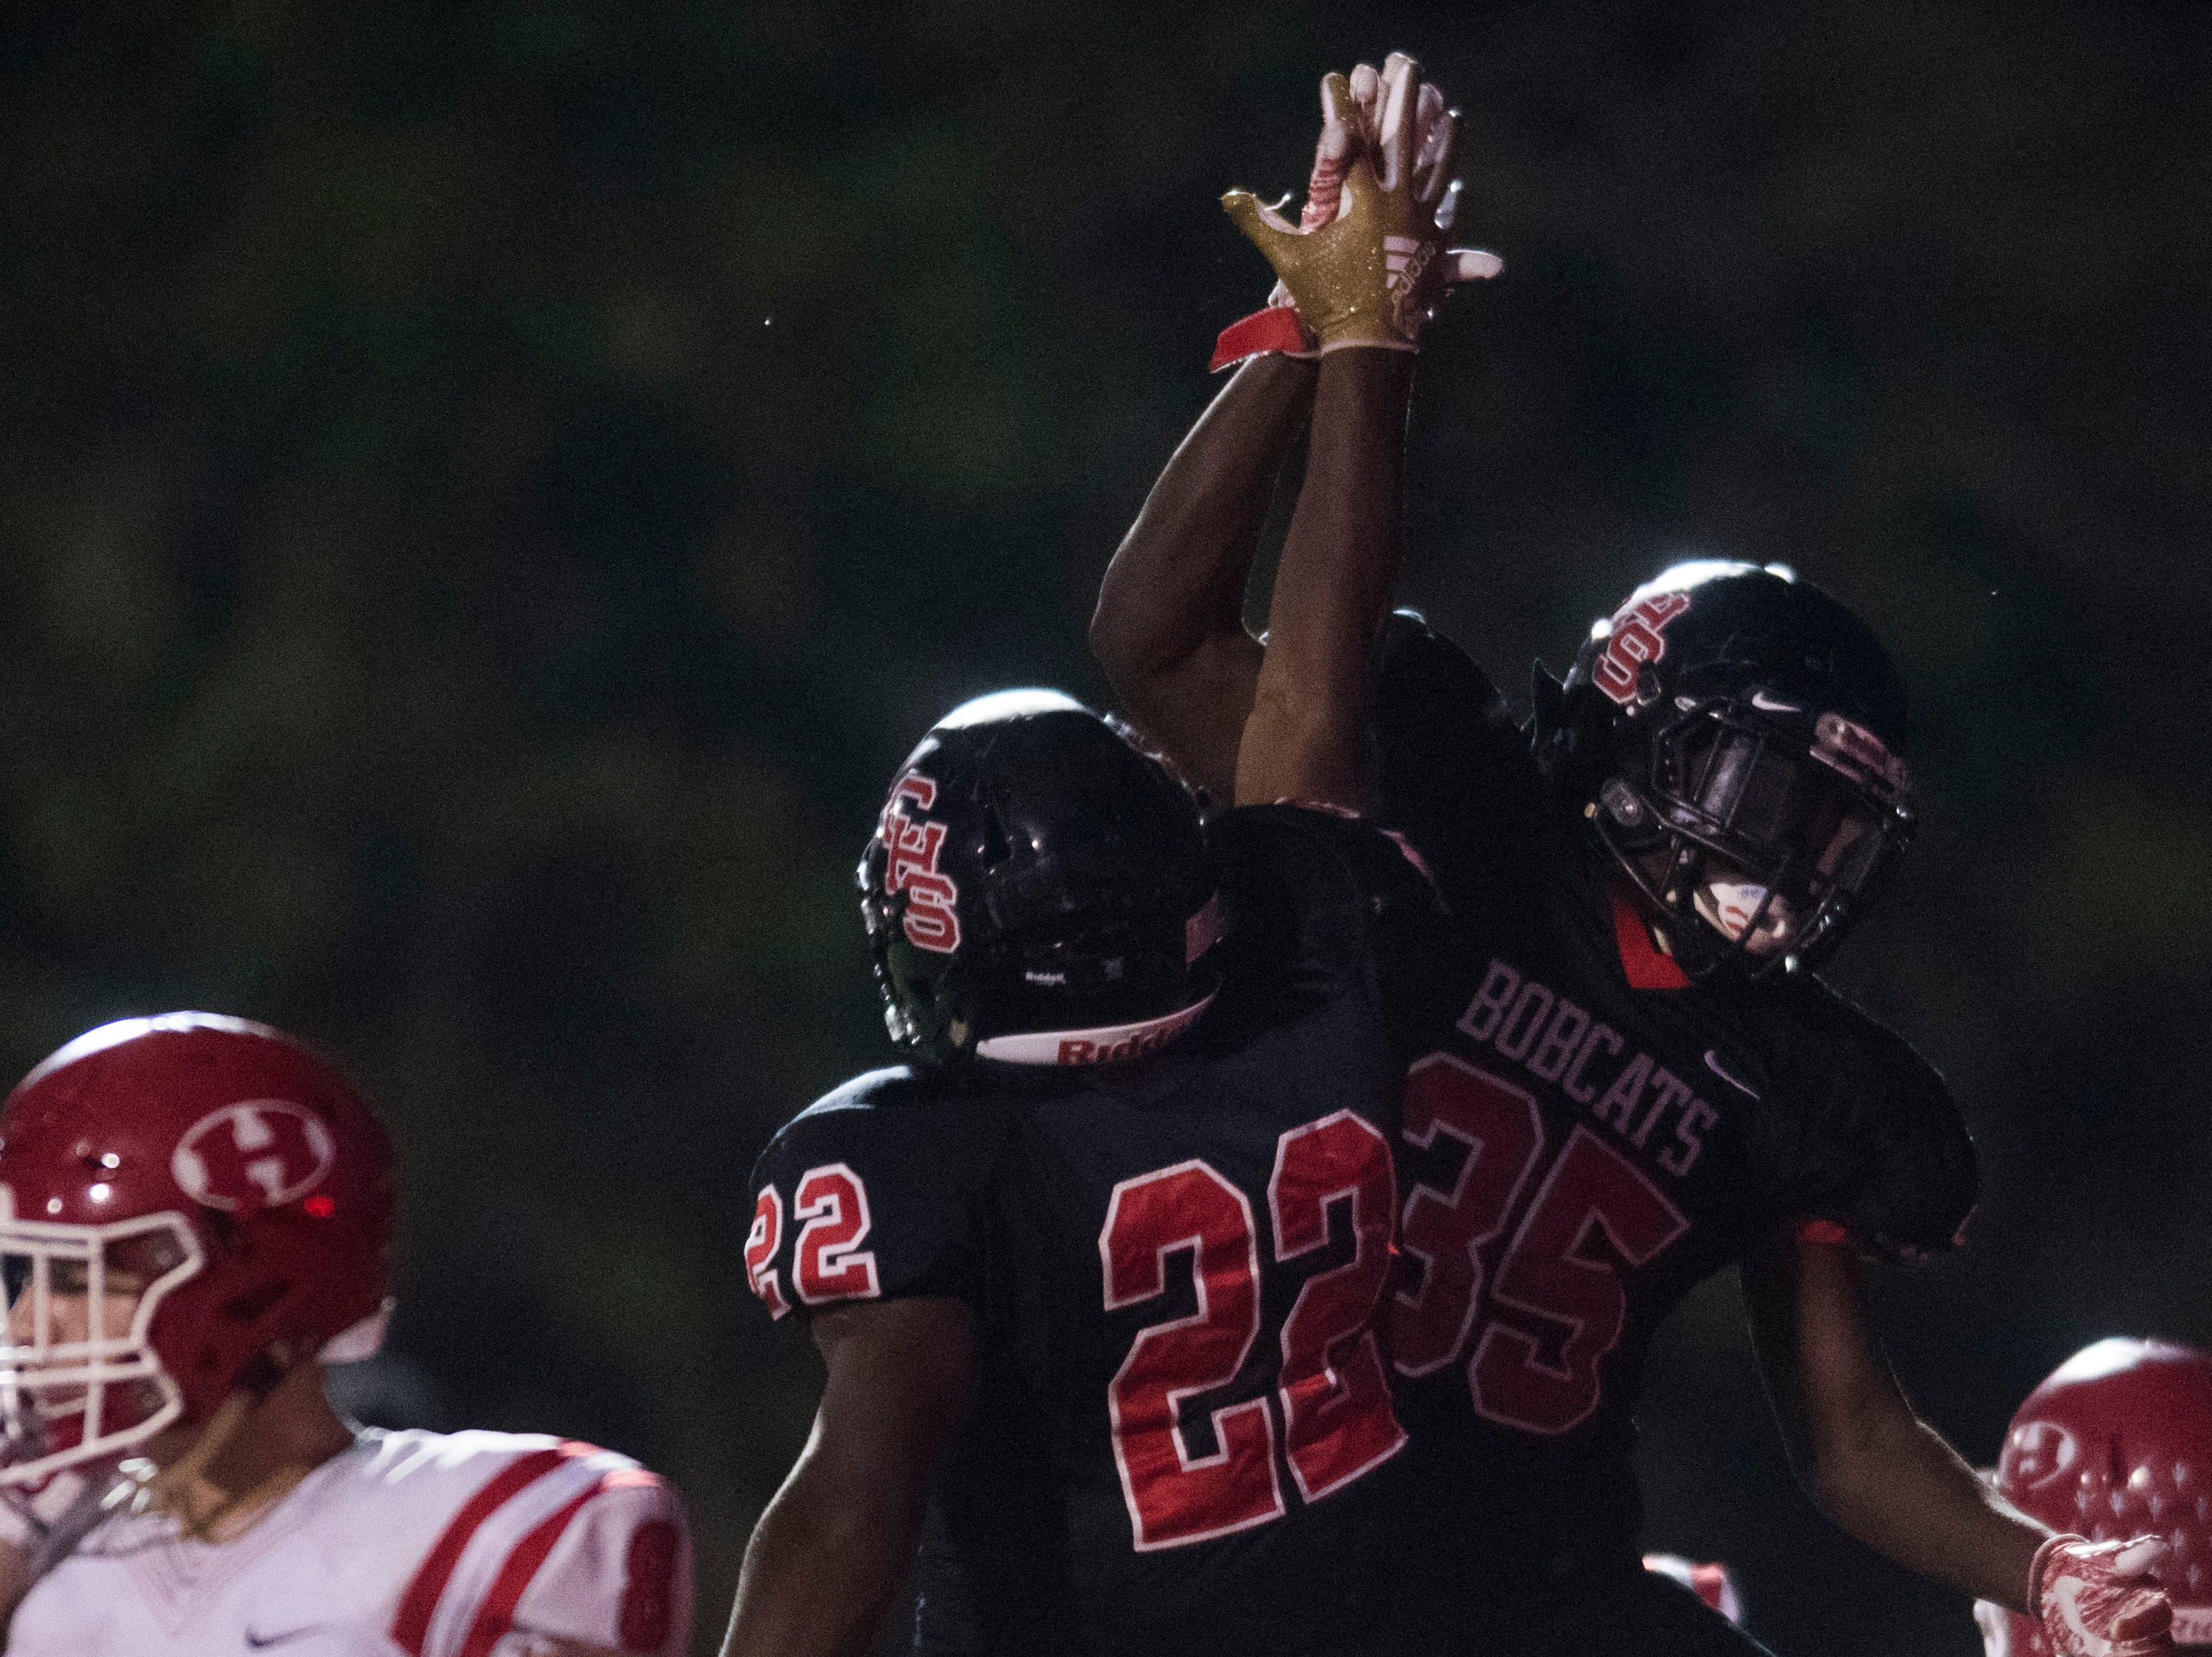 Central's Jason Merritts (35) celebrates teammate Devone Moss' touch down during a high school football game between Central and Halls at Central Friday, Sept. 28, 2018. Central won 49-17.